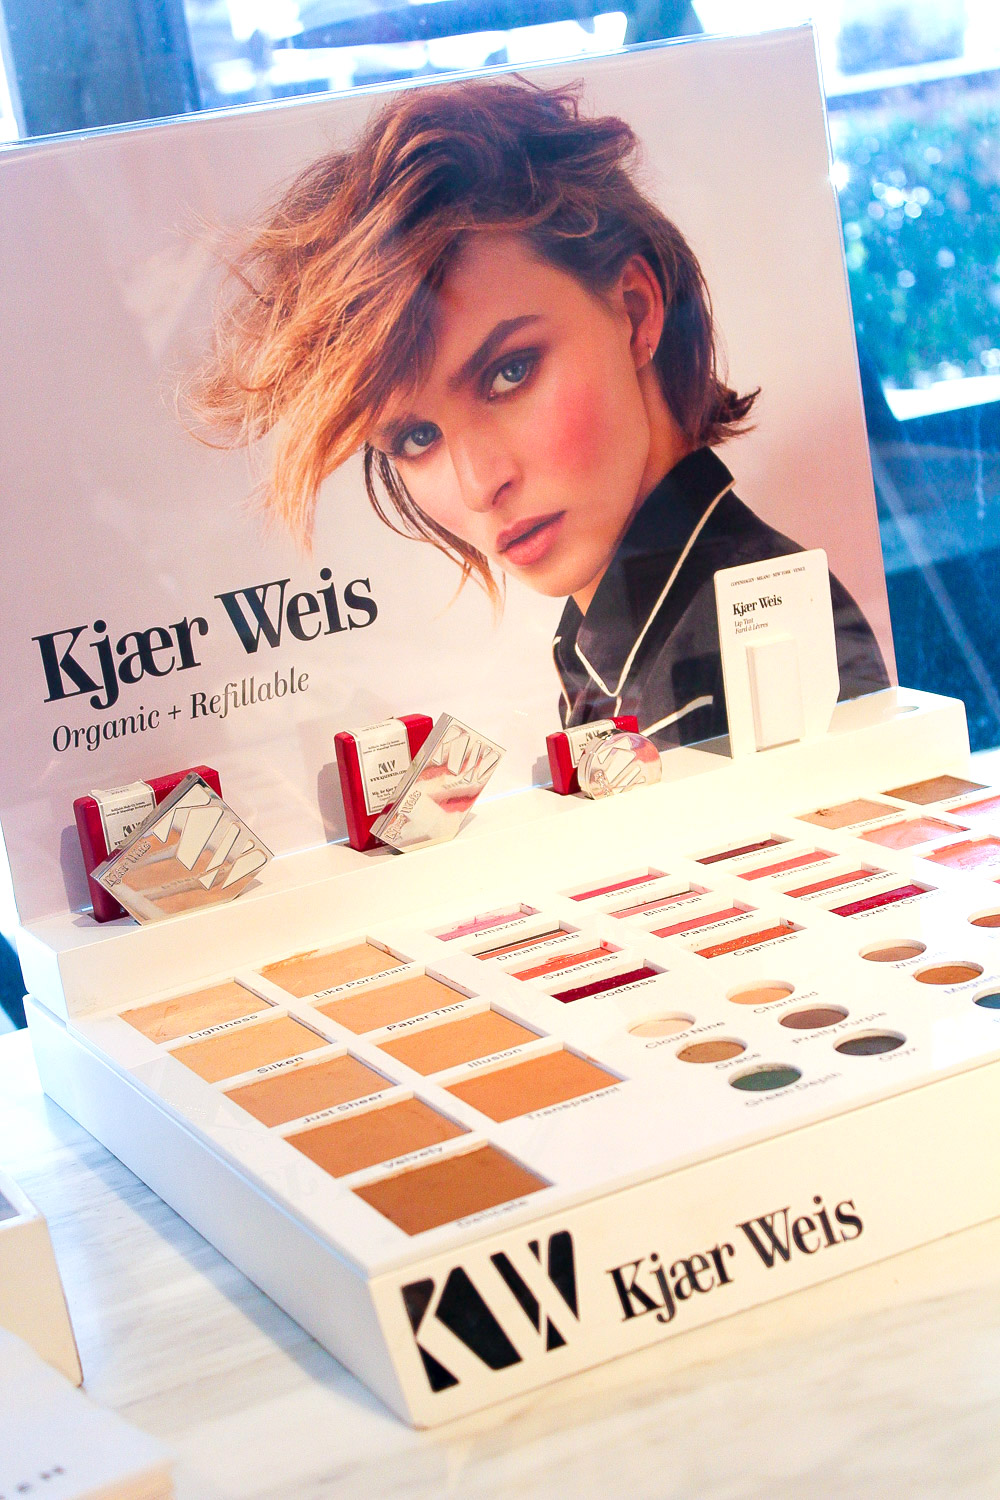 makeover and interview with kirsten kjaer weis